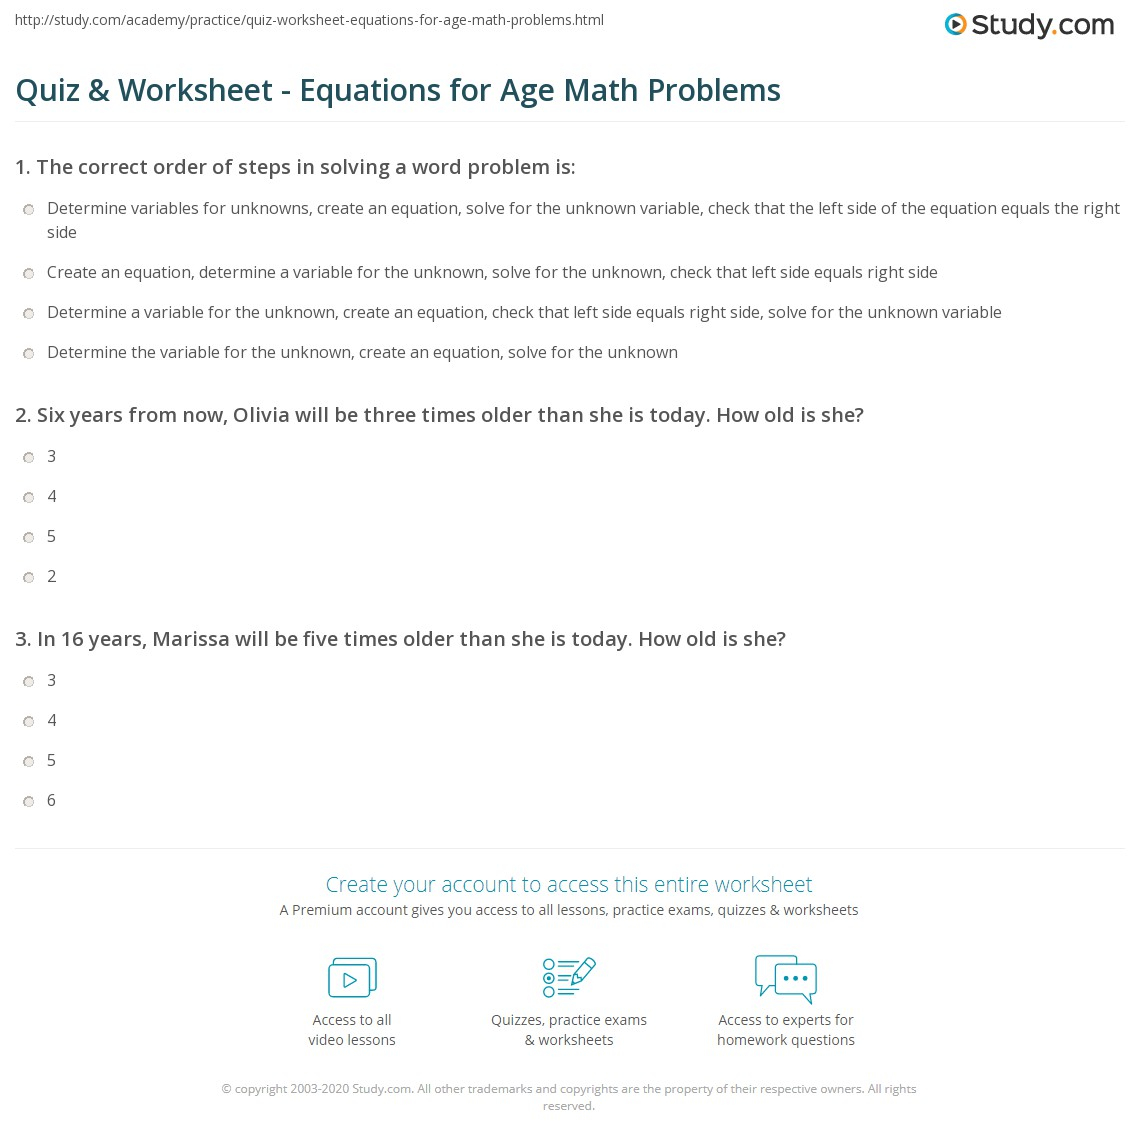 Quiz & Worksheet - Equations For Age Math Problems | Study